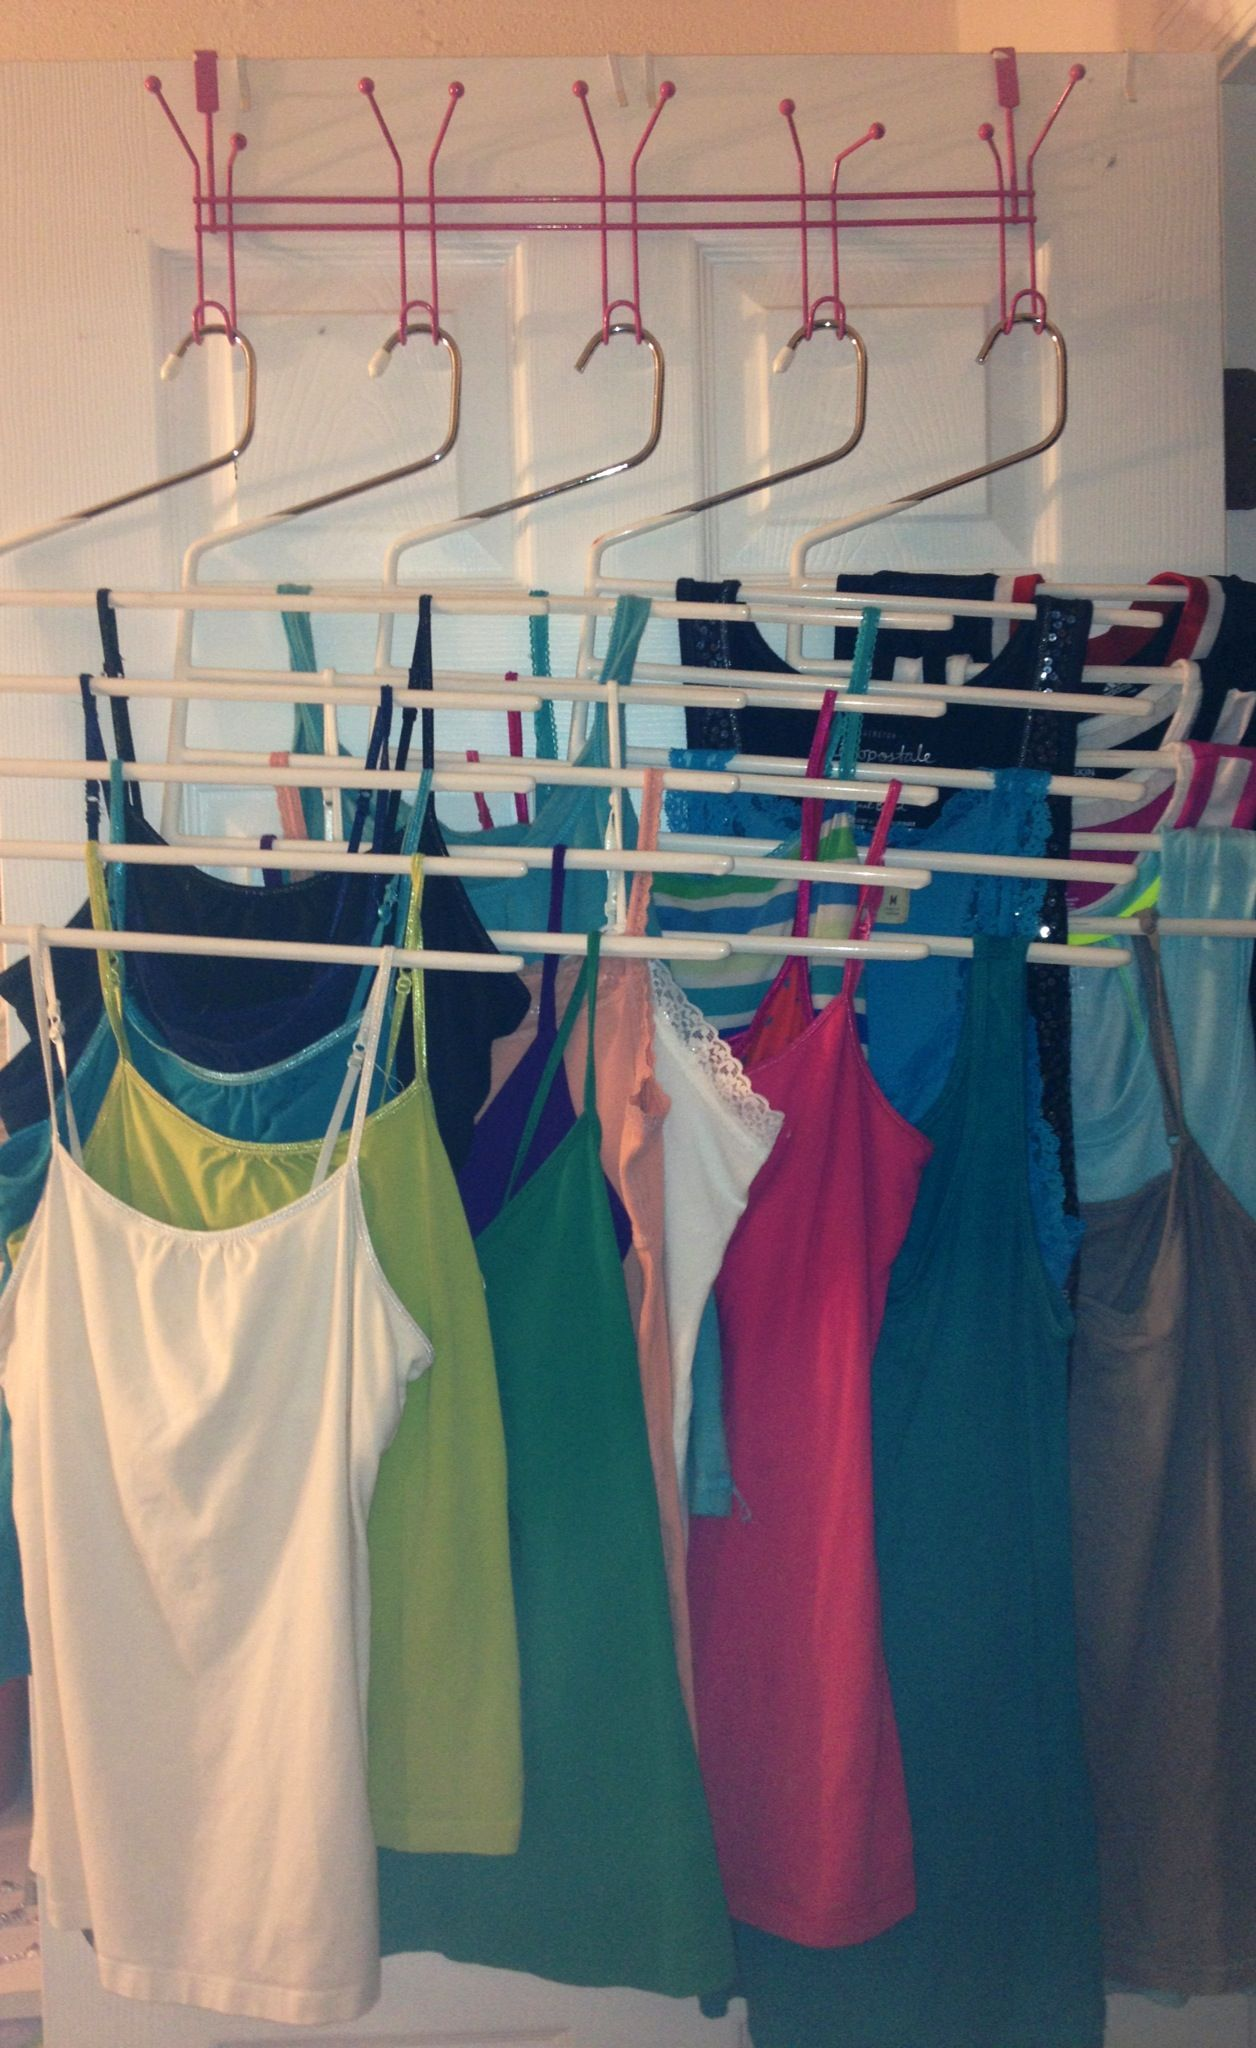 Pin By Allison Garber On Home Clean And Organized Diy Clothes Hanger Rack Diy Clothes Hangers Closet Organization Diy